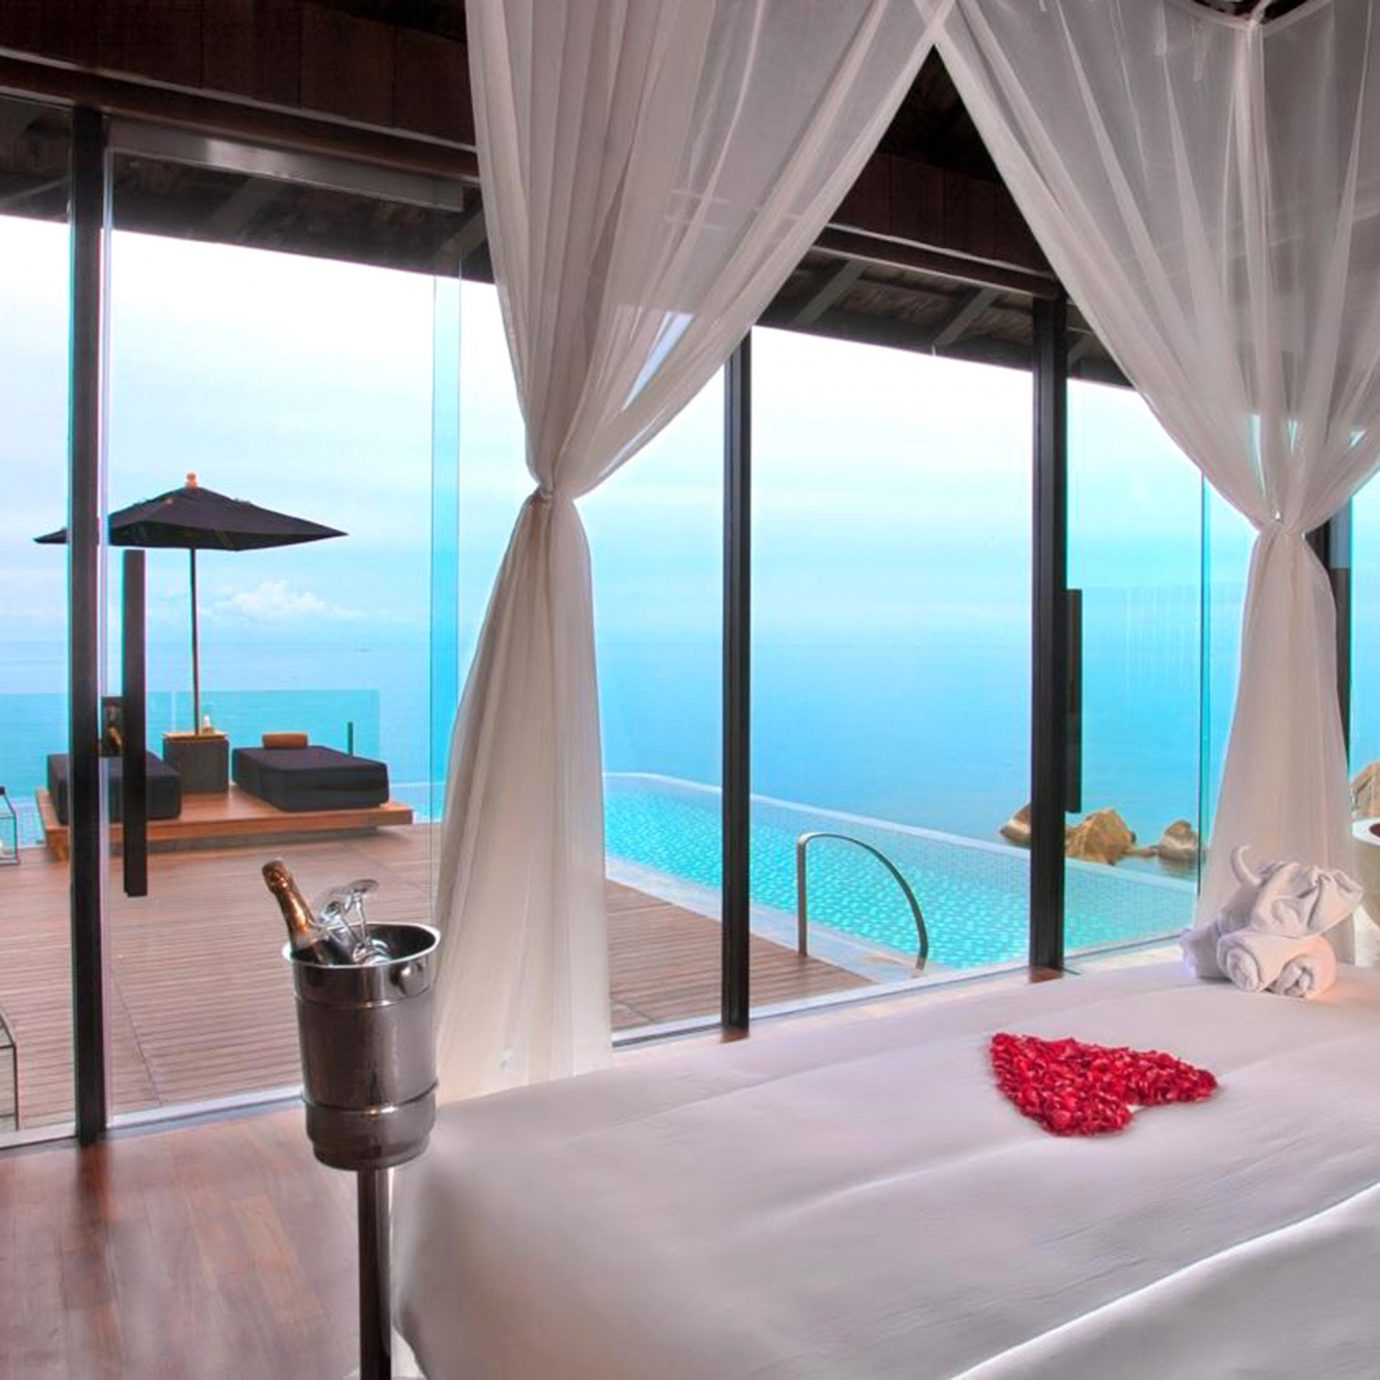 Balcony Beachfront Bedroom Honeymoon Patio Pool Romantic Scenic views Suite Tropical Villa Waterfront property building Resort cottage